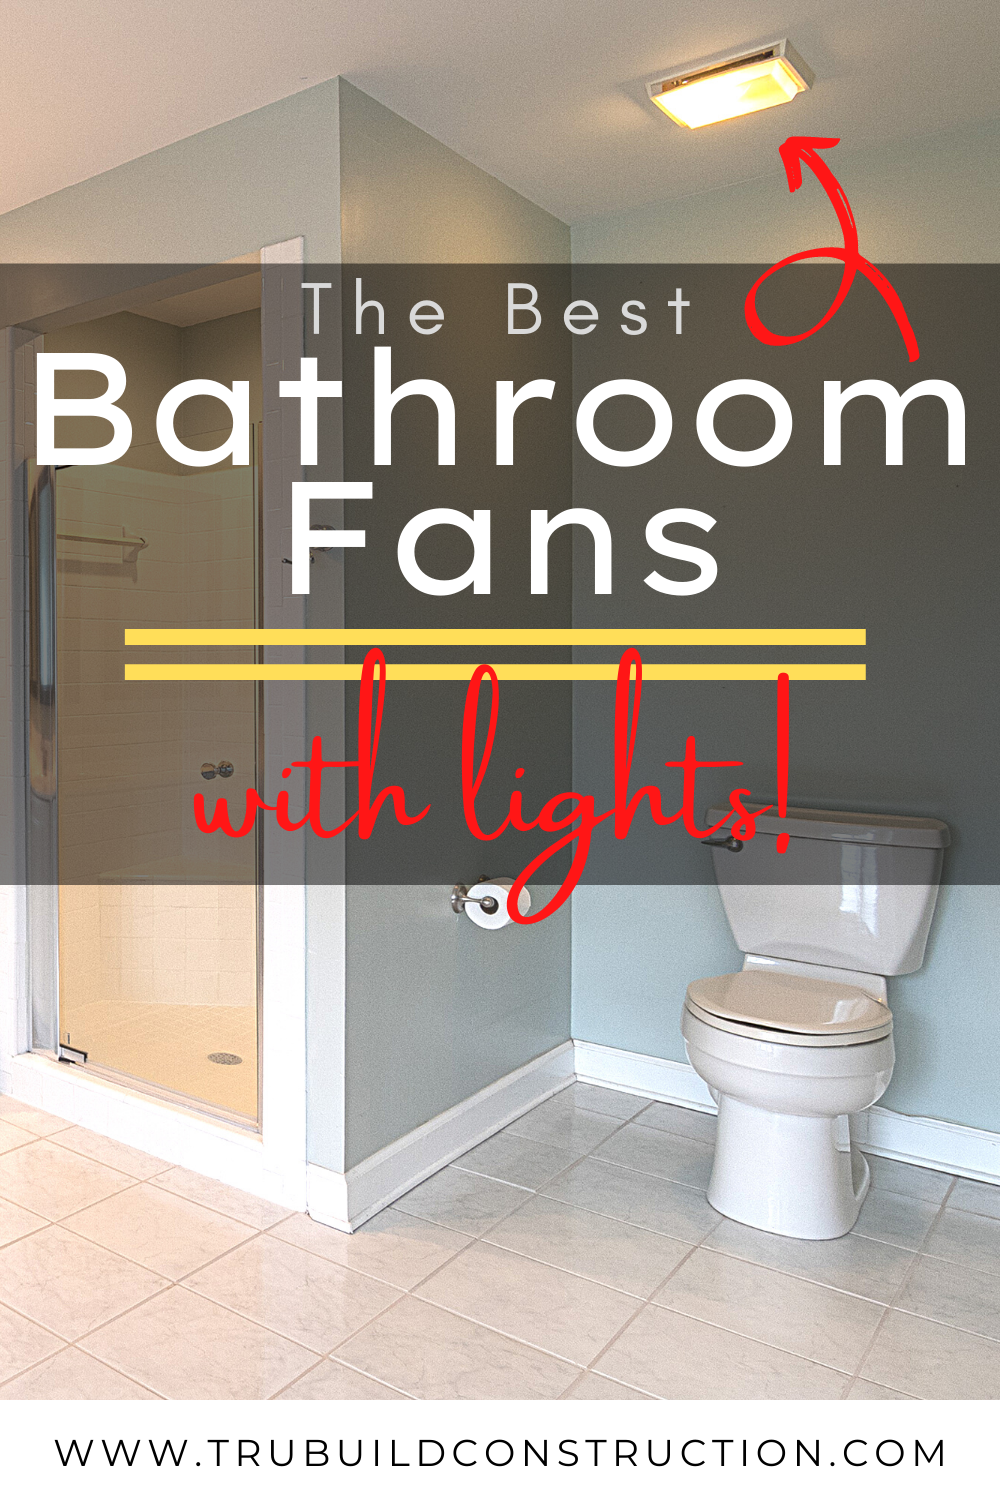 The Best Bathroom Fans With Lights For Your Home — TruBuild